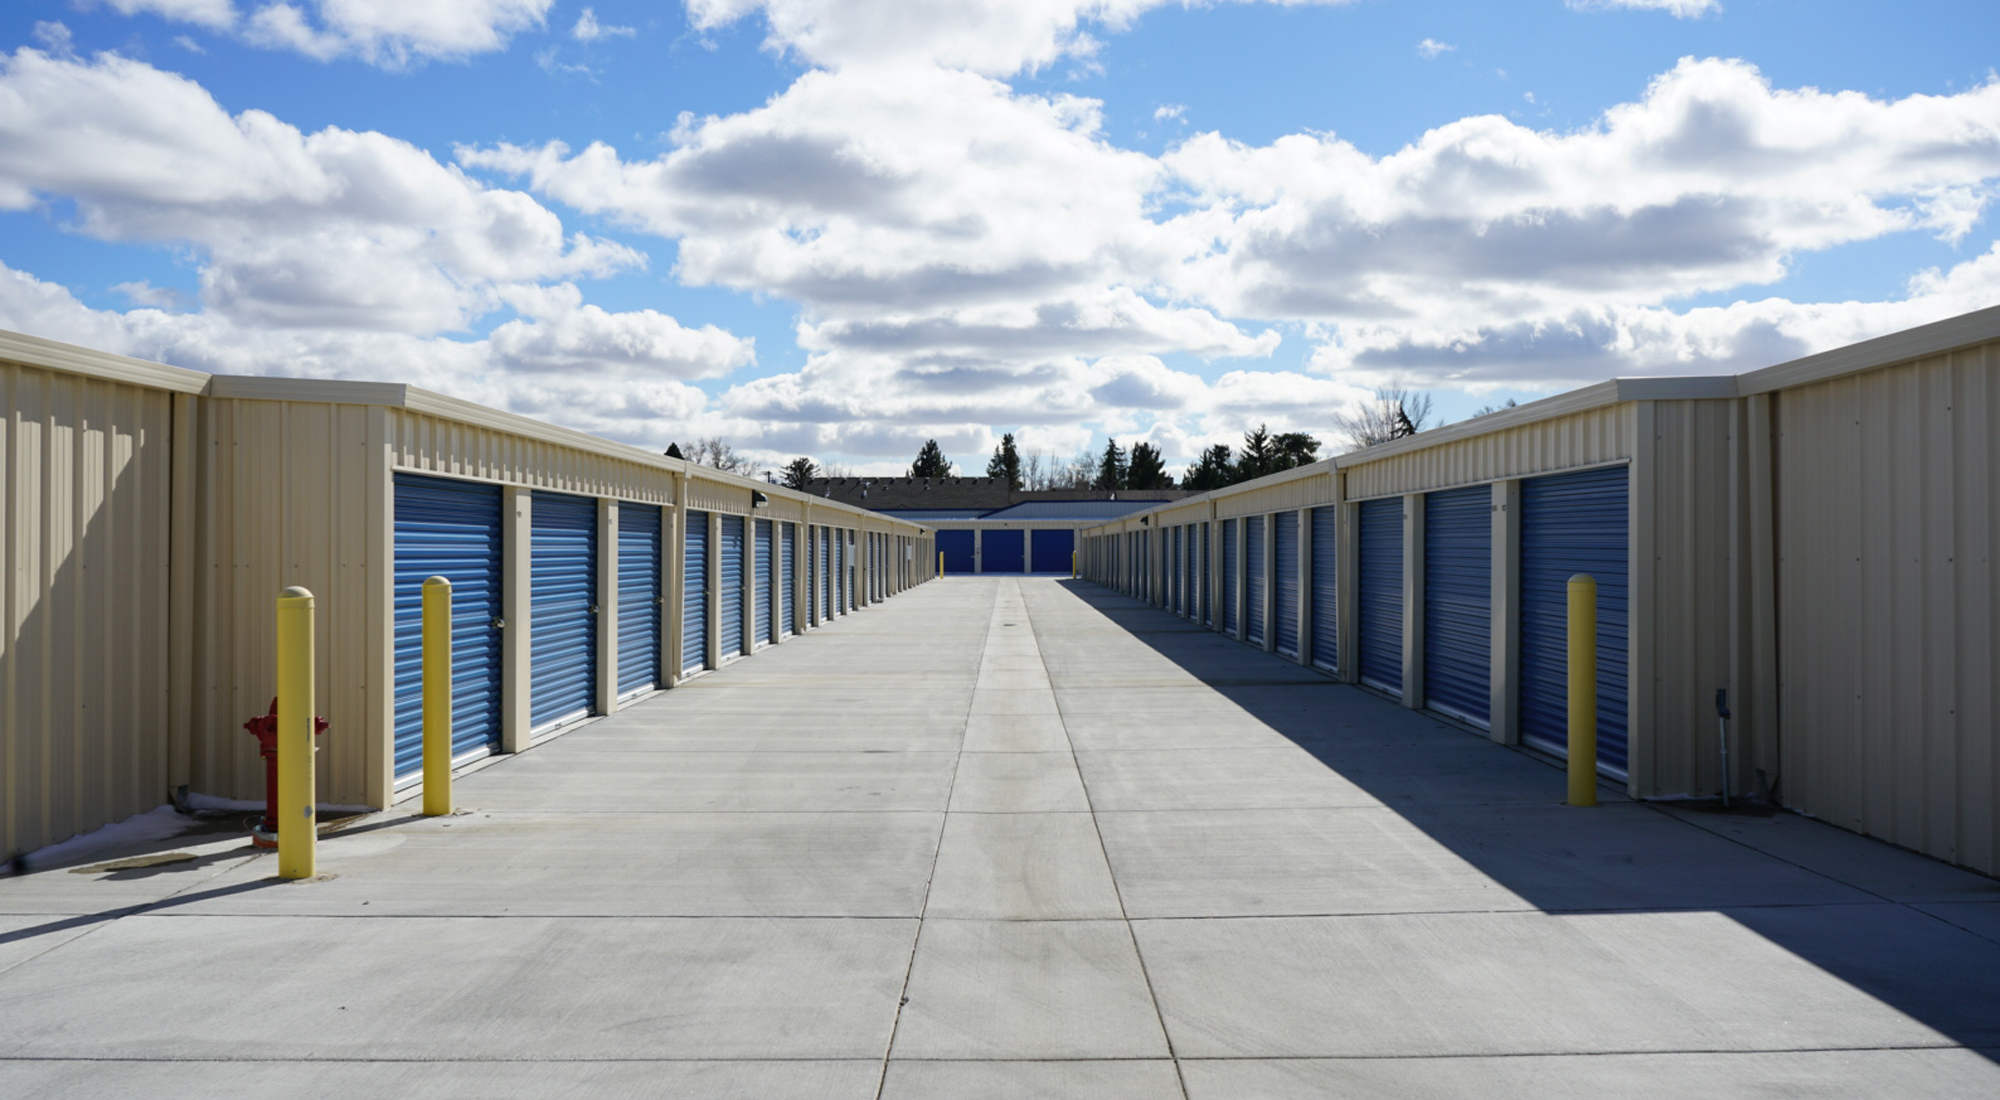 Best Storage Facility In Sparks Nv 89431 With Pyramid